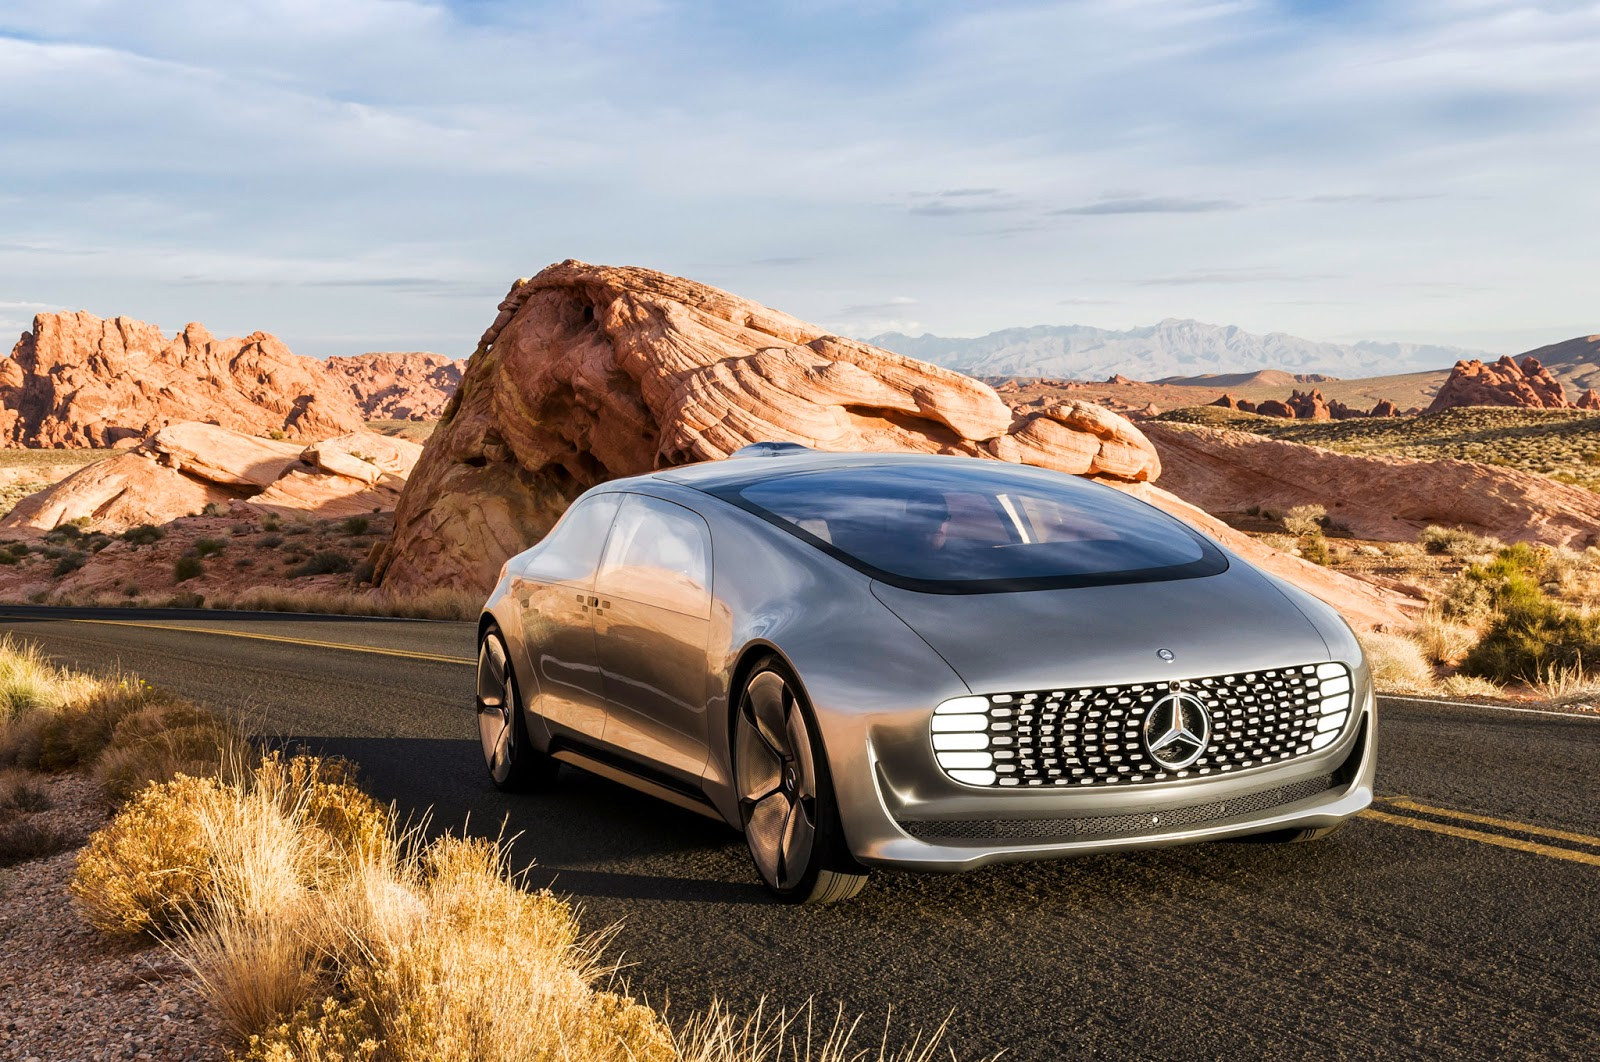 The Mercedes-Benz F 015 Luxury in Motion.